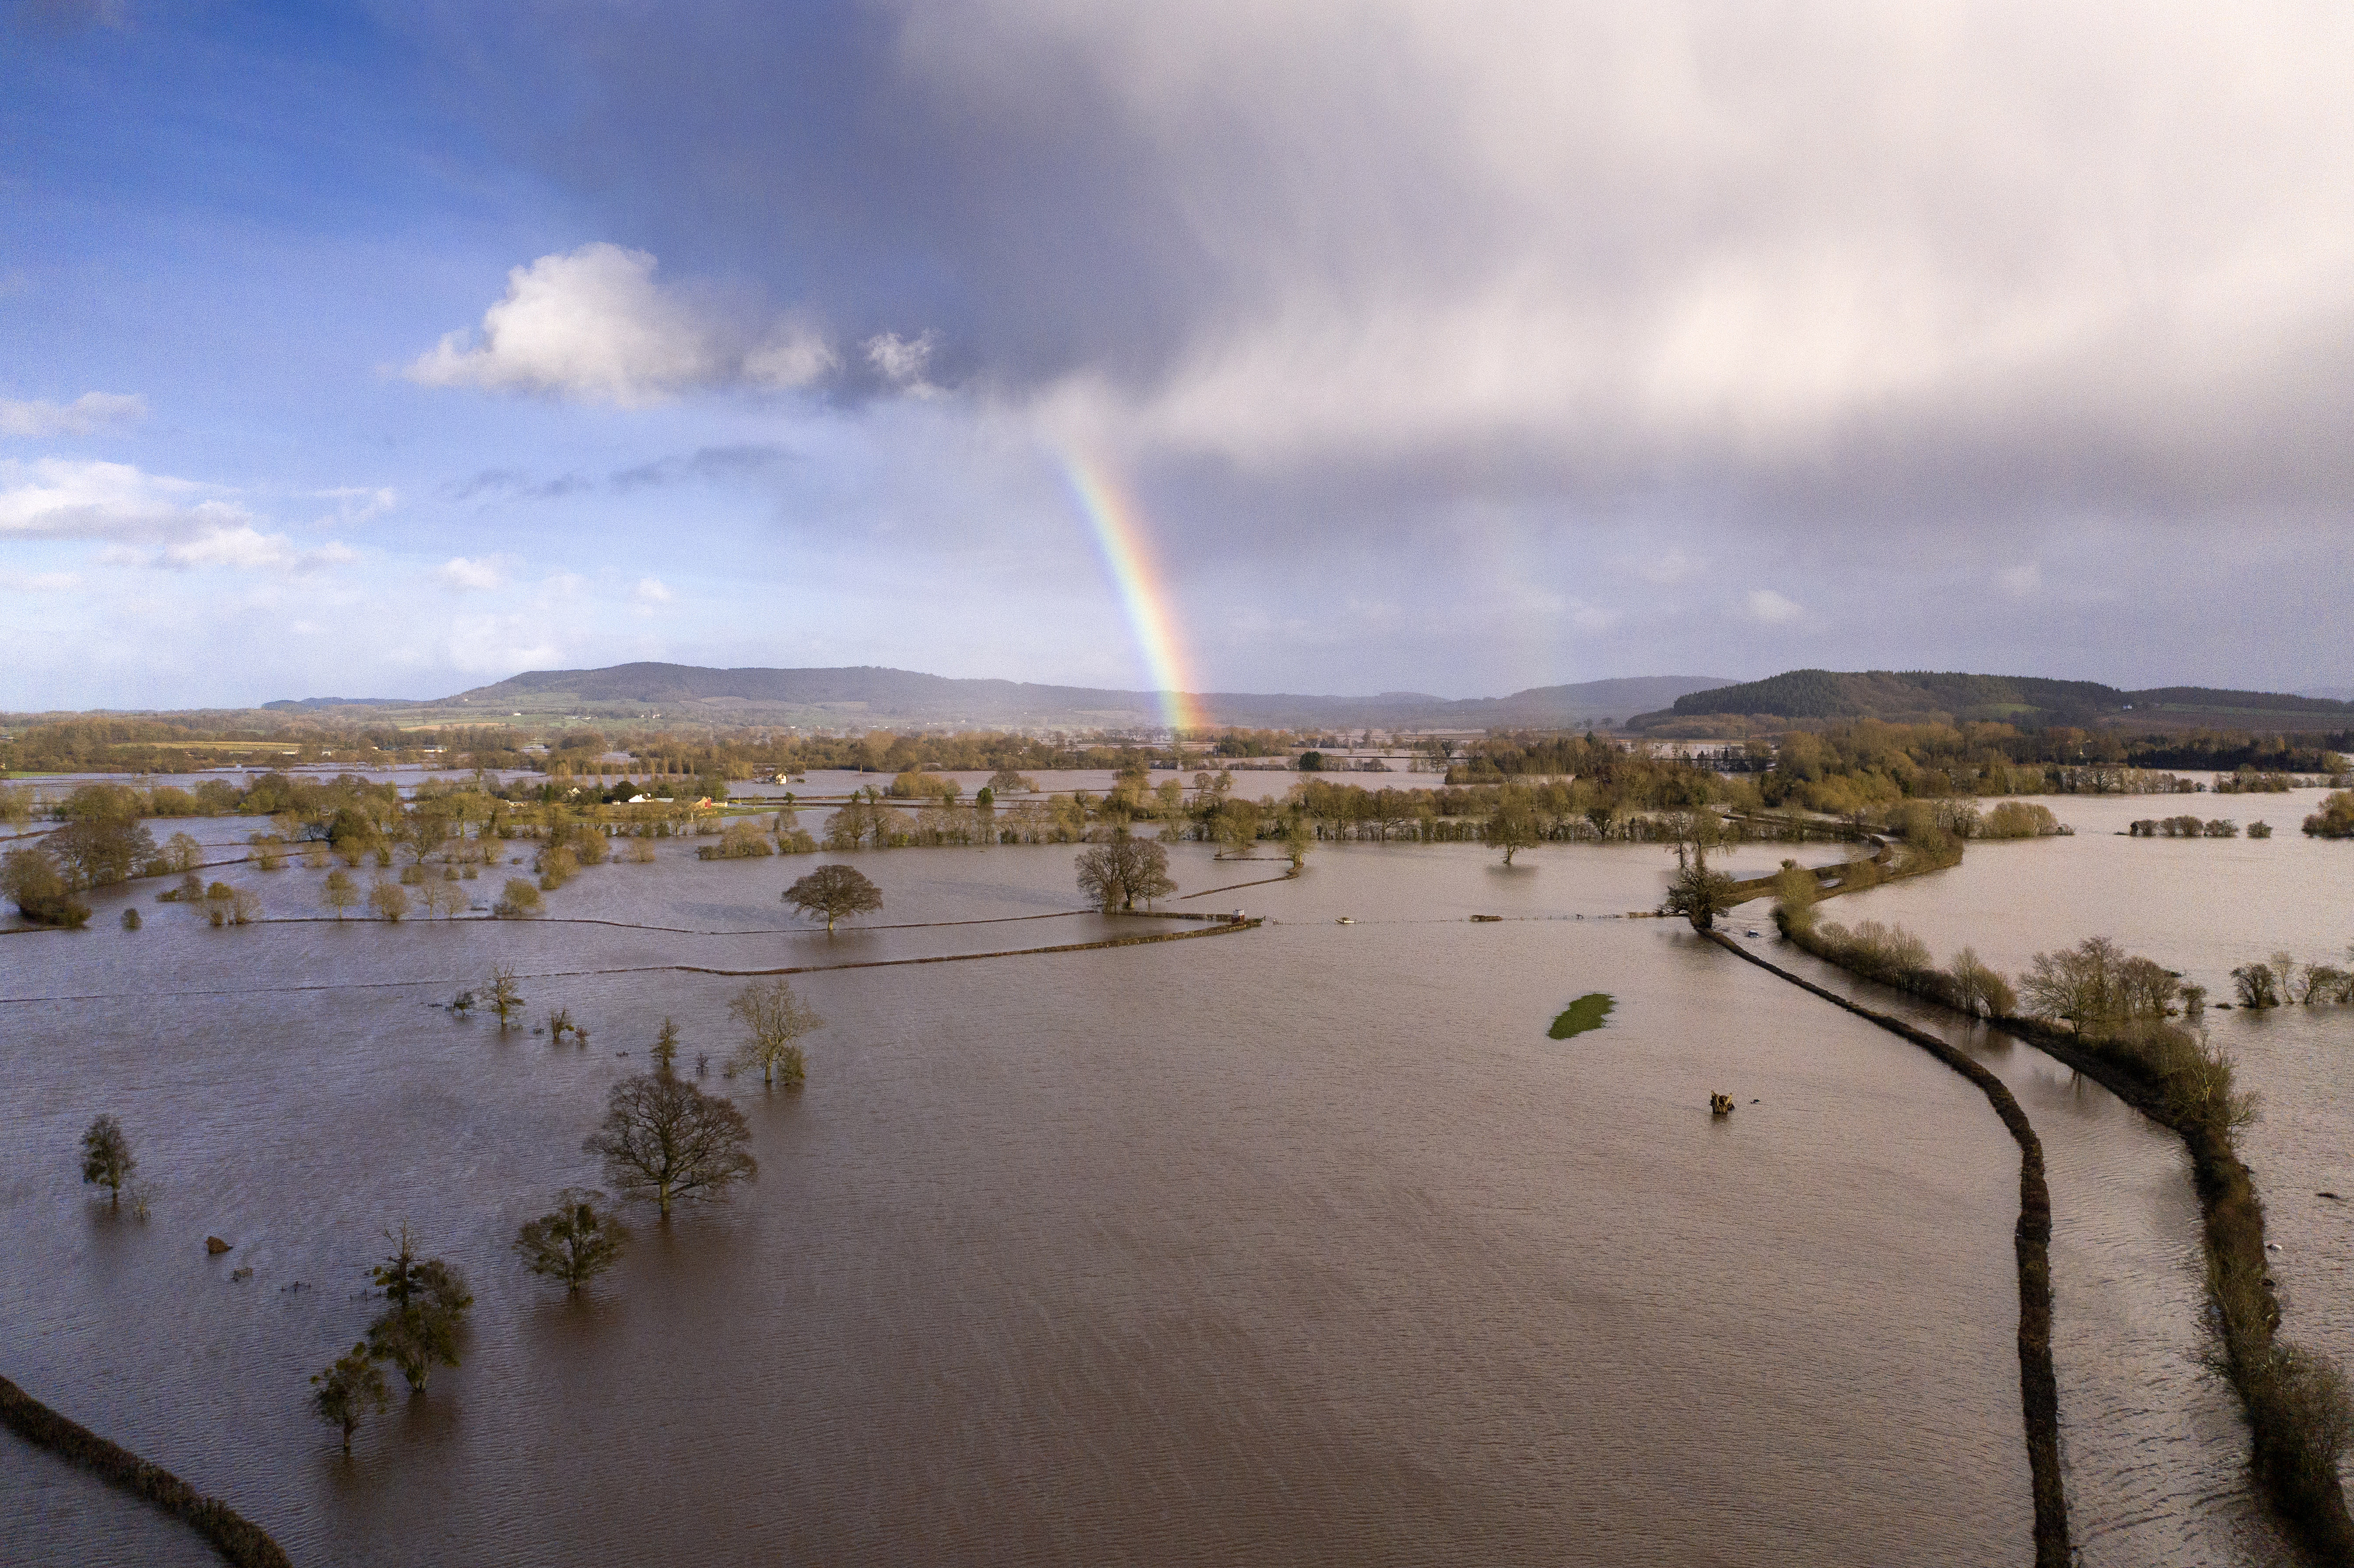 HEREFORD, ENGLAND - FEBRUARY 17: A rainbow appears over flooded fields in the Wye Valley, near the hamlet of Wellesley, following Storm Dennis on February 17, 2020 in Hereford, England. Storm Dennis is the second named storm to bring extreme weather in a week and follows in the aftermath of Storm Ciara. (Photo by Christopher Furlong/Getty Images)